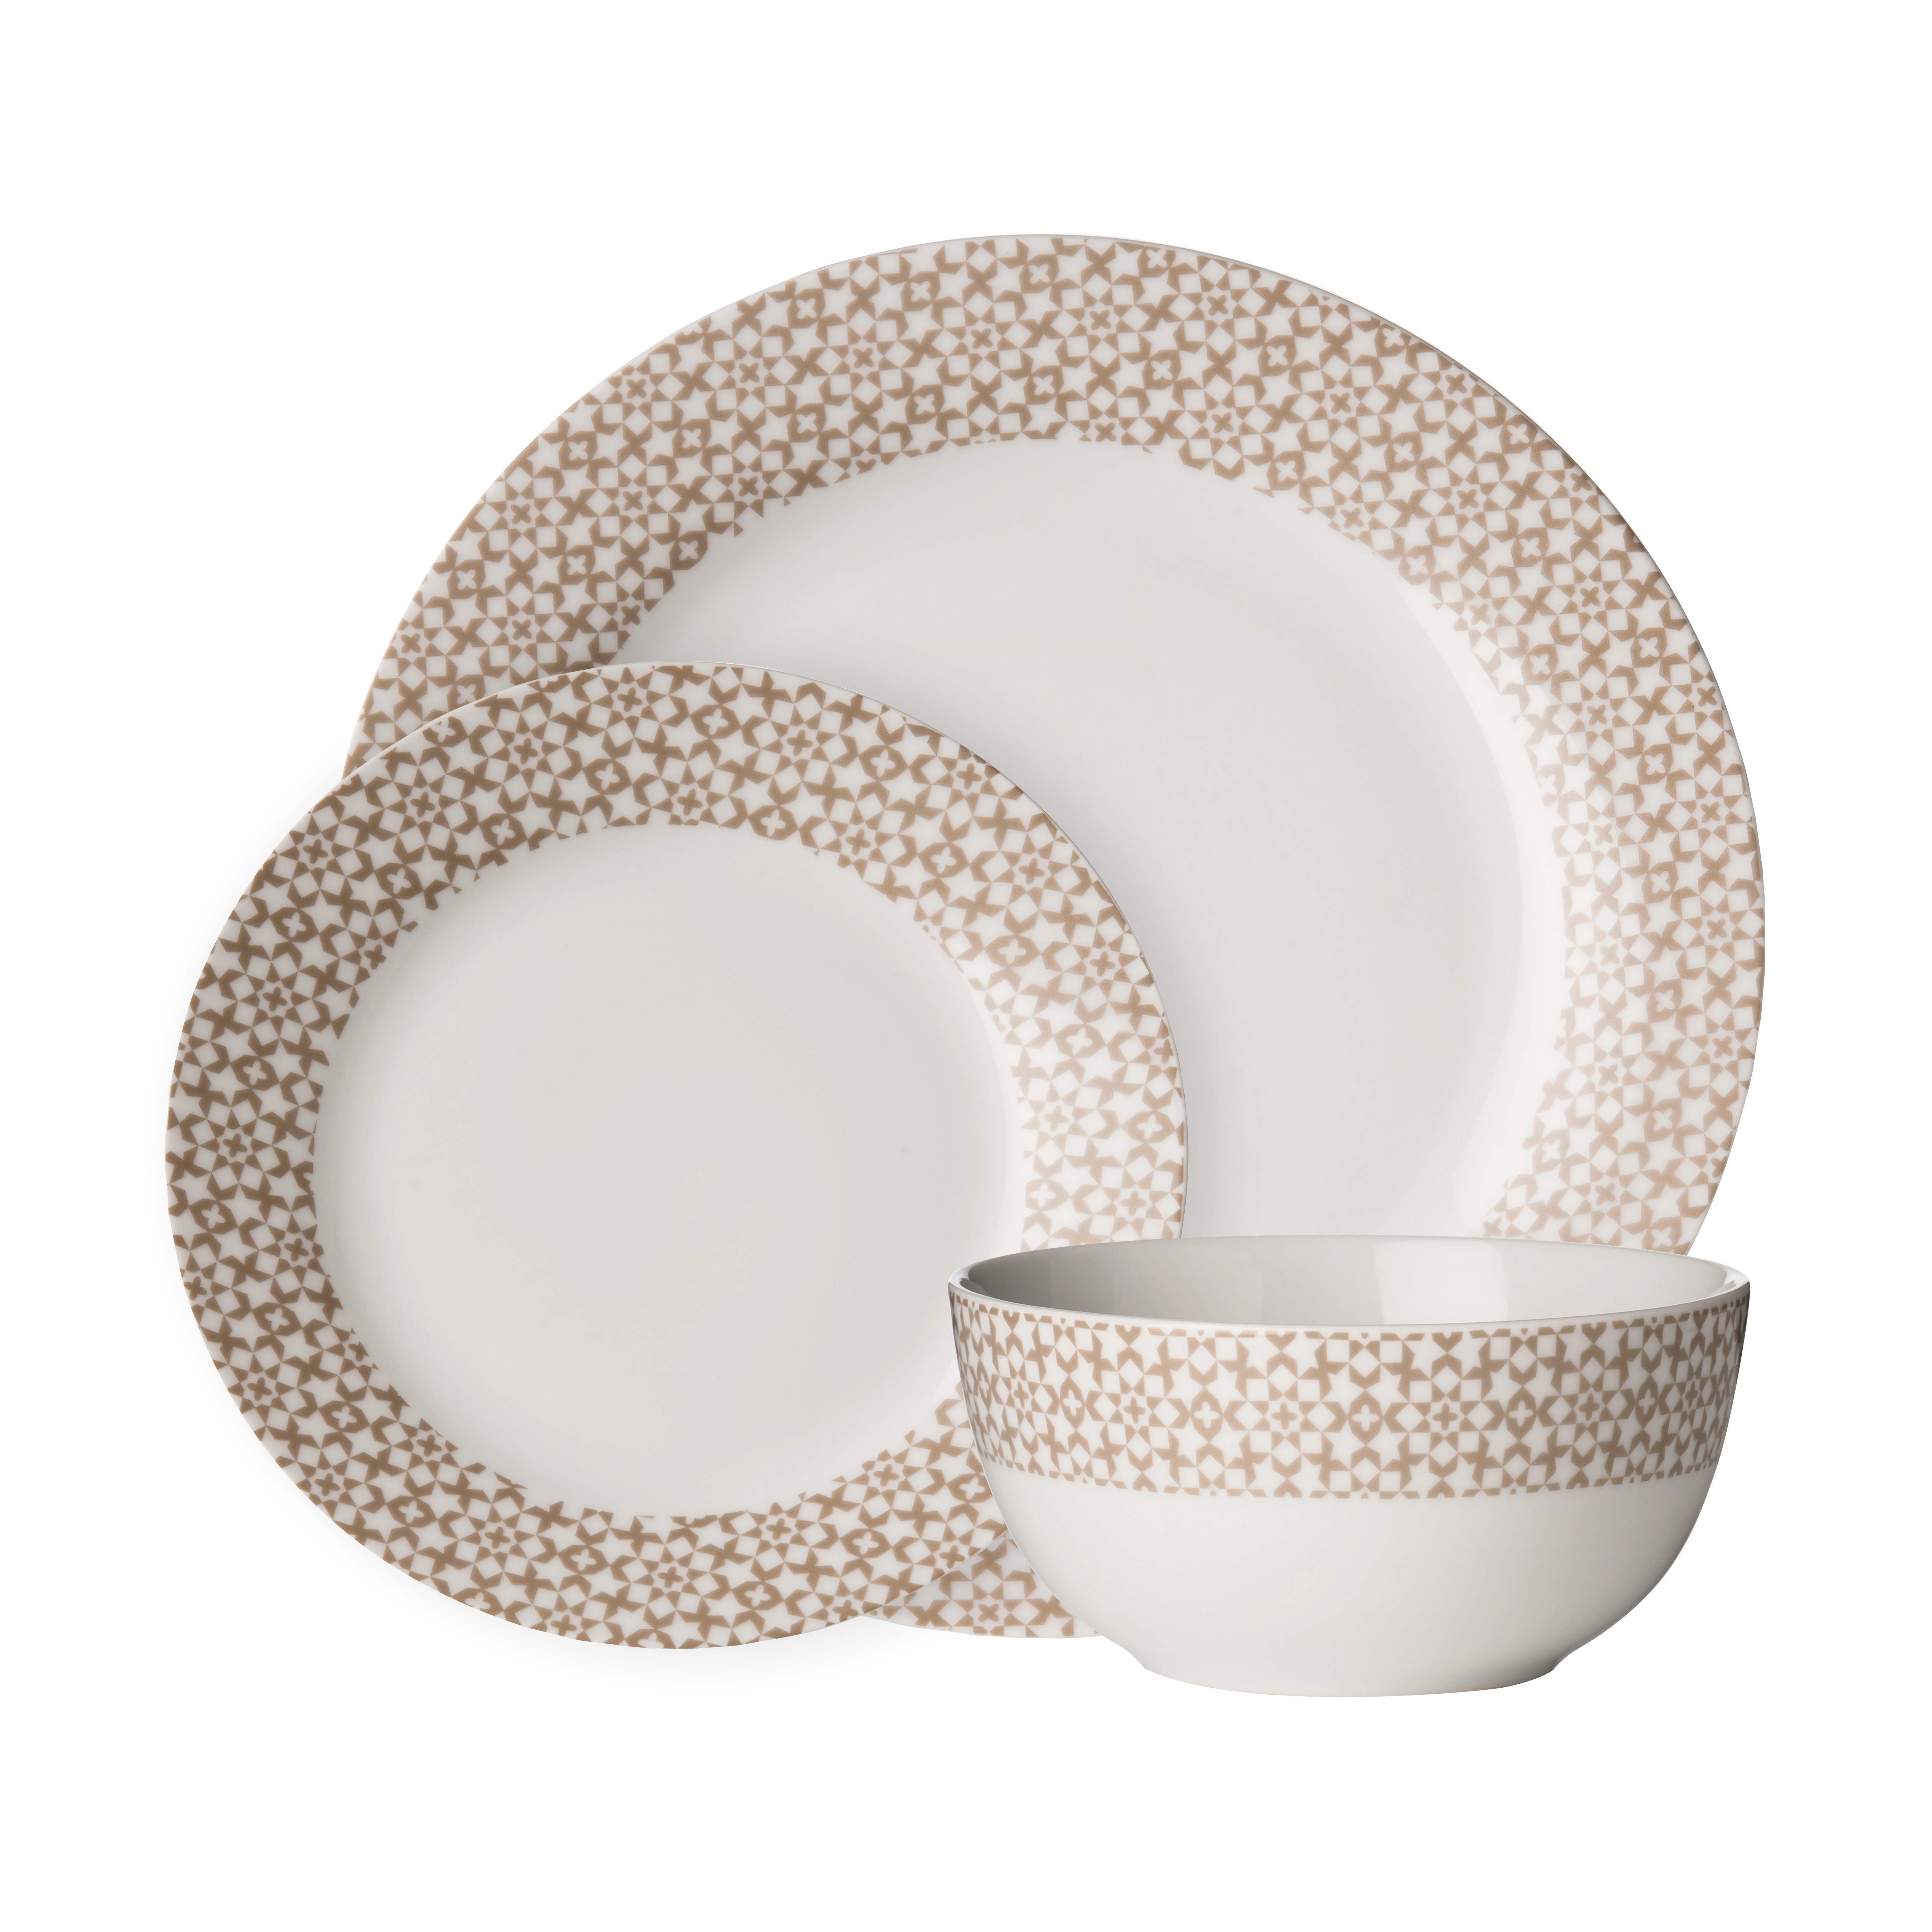 Avie 12pc Casablanca Dinner Set Natural Porcelain